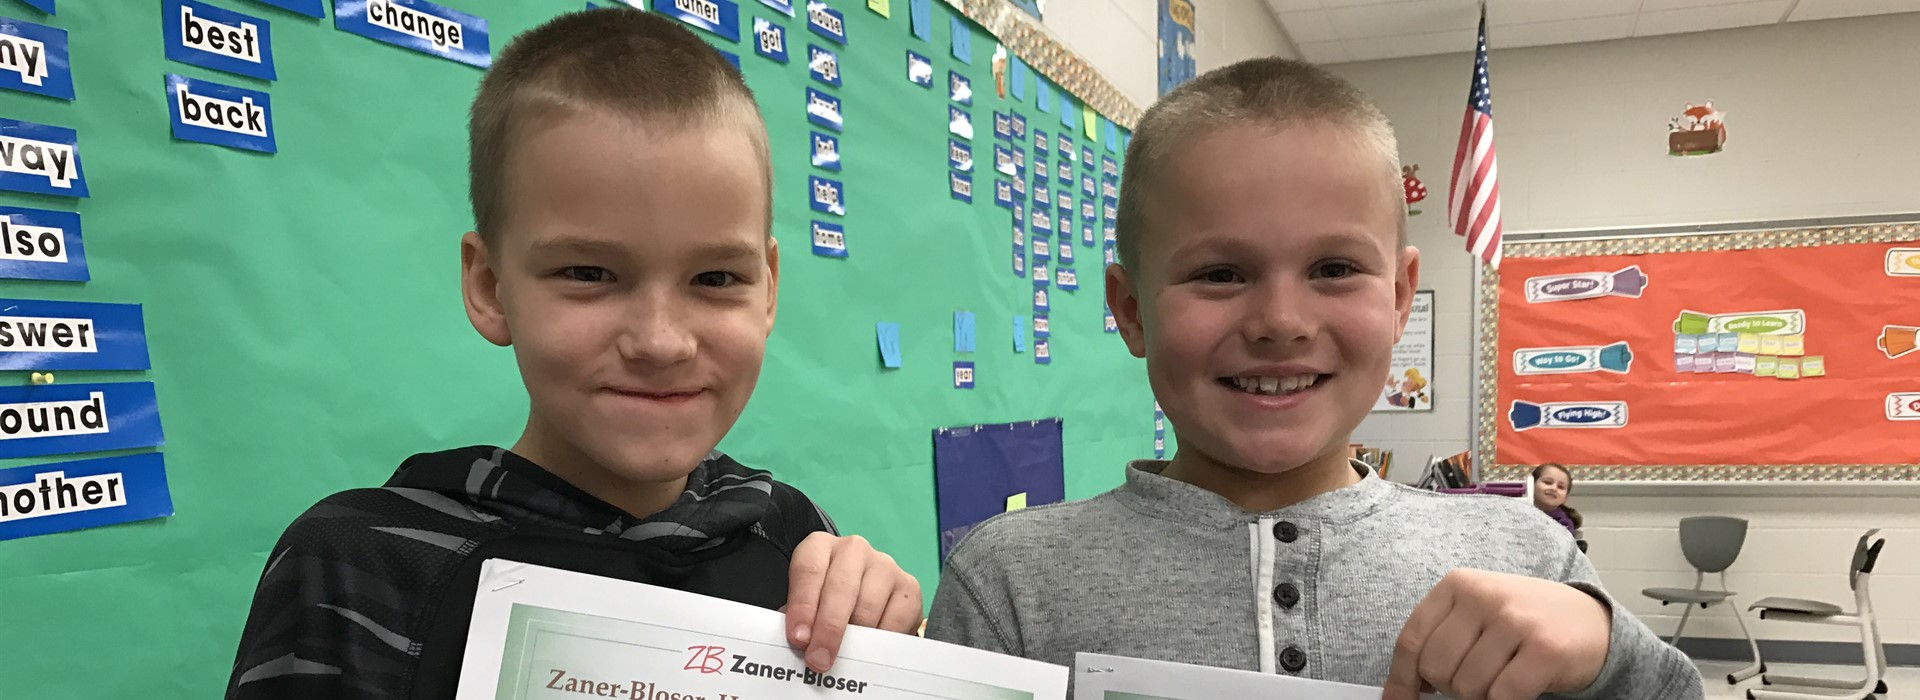 Winners in the Handwriting Contest for Mrs. Thomas Second Grade  James Wells and Zerik Rinard